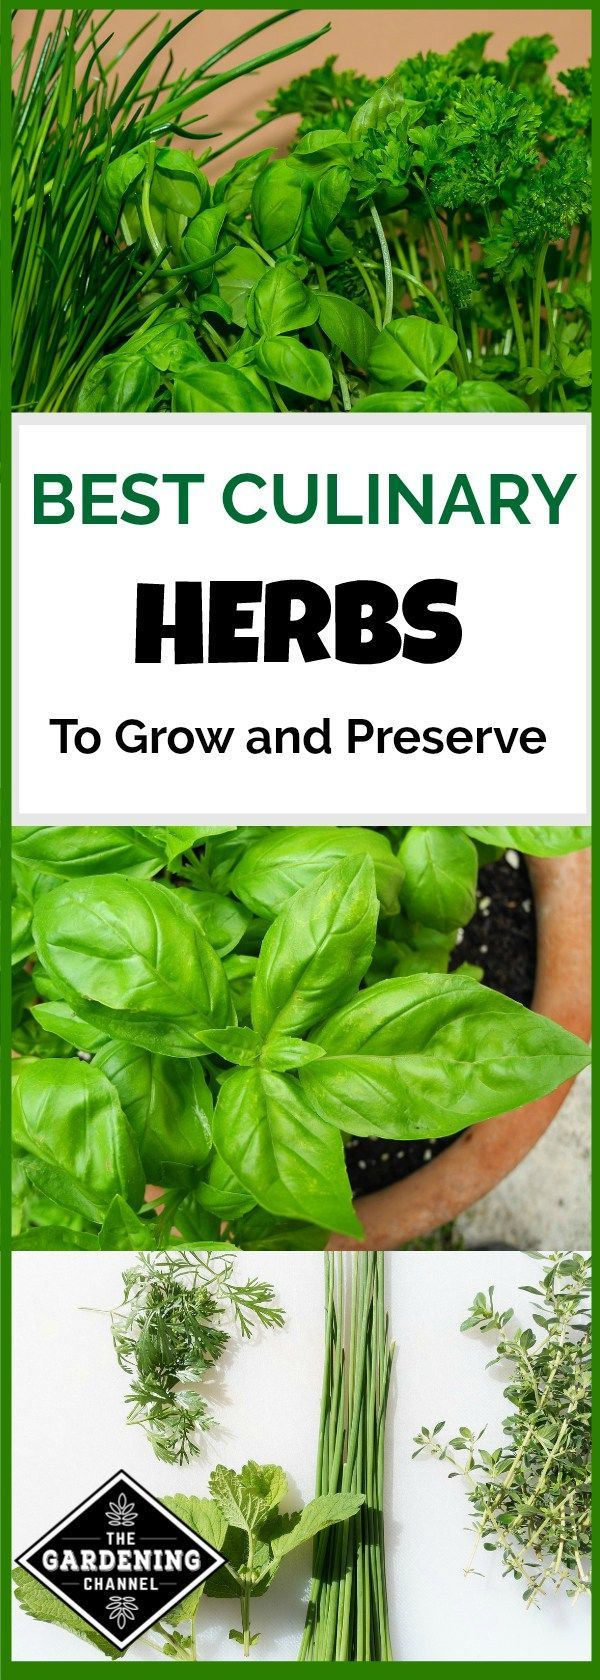 Culinary herbs are leaves and seeds that are used to flavor food. Learn the most popular culinary herbs to grow in your herb garden and how to preserve.